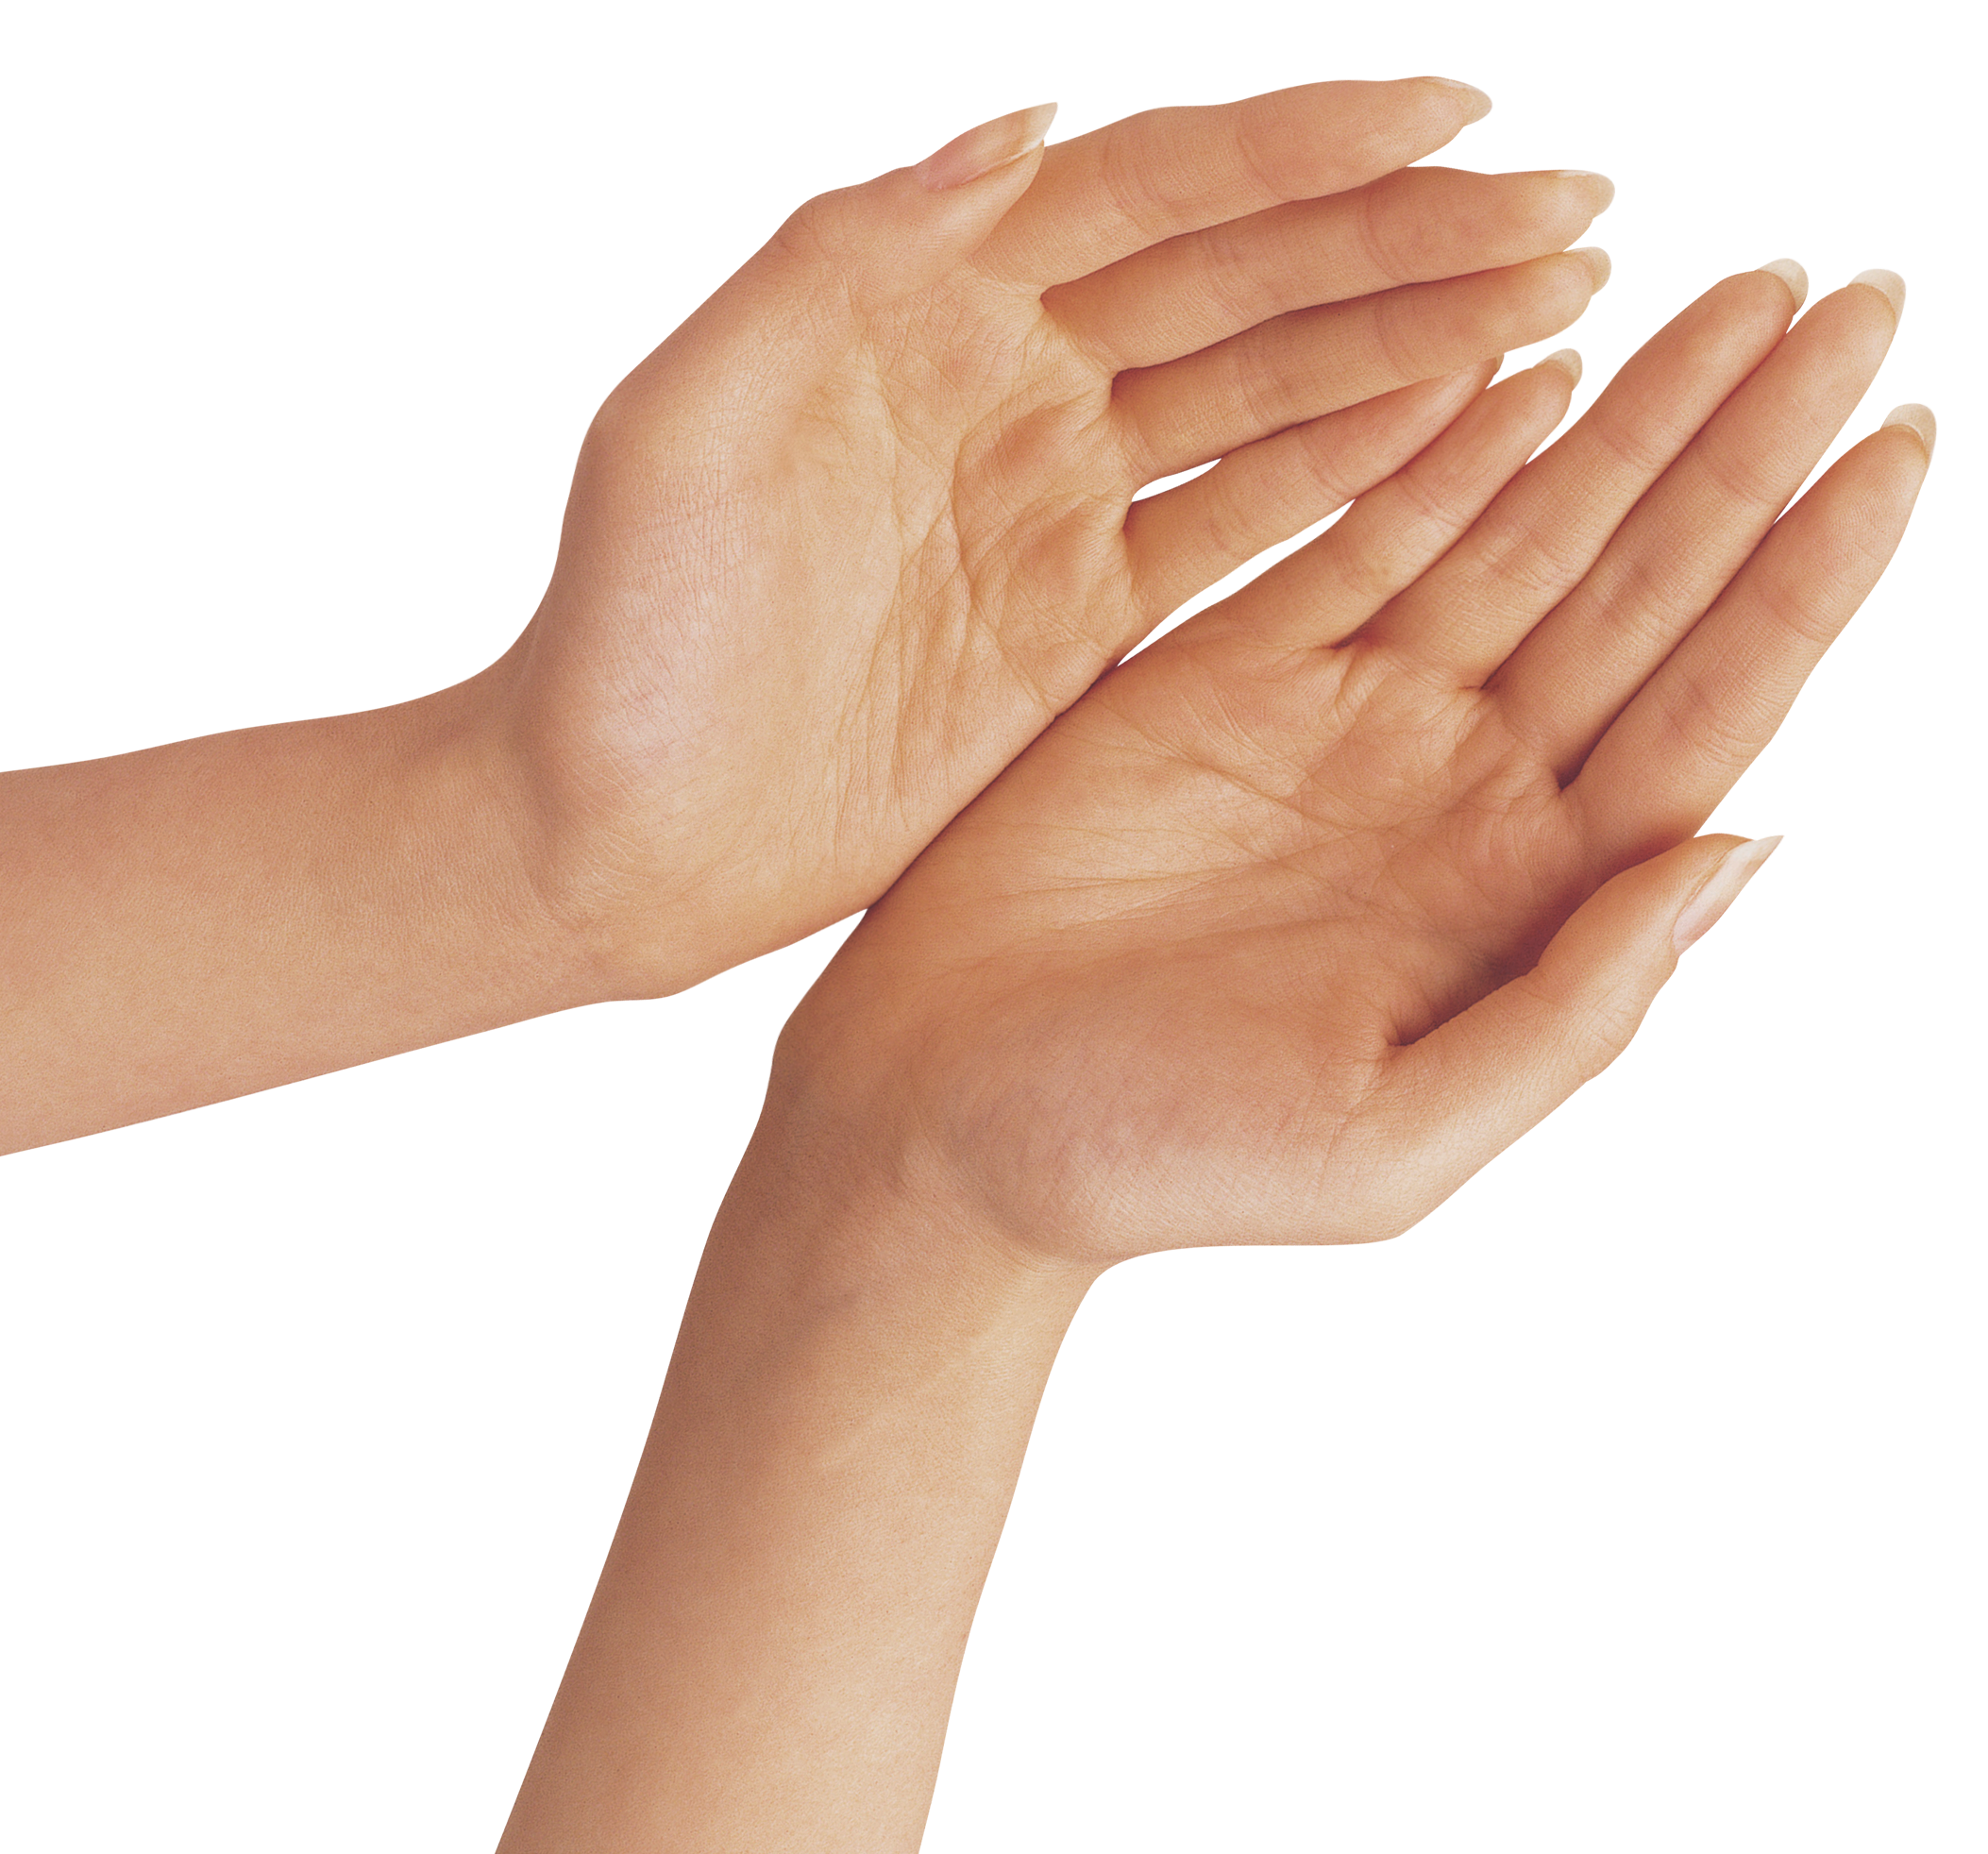 Two hands png image. Hand clipart transparent background